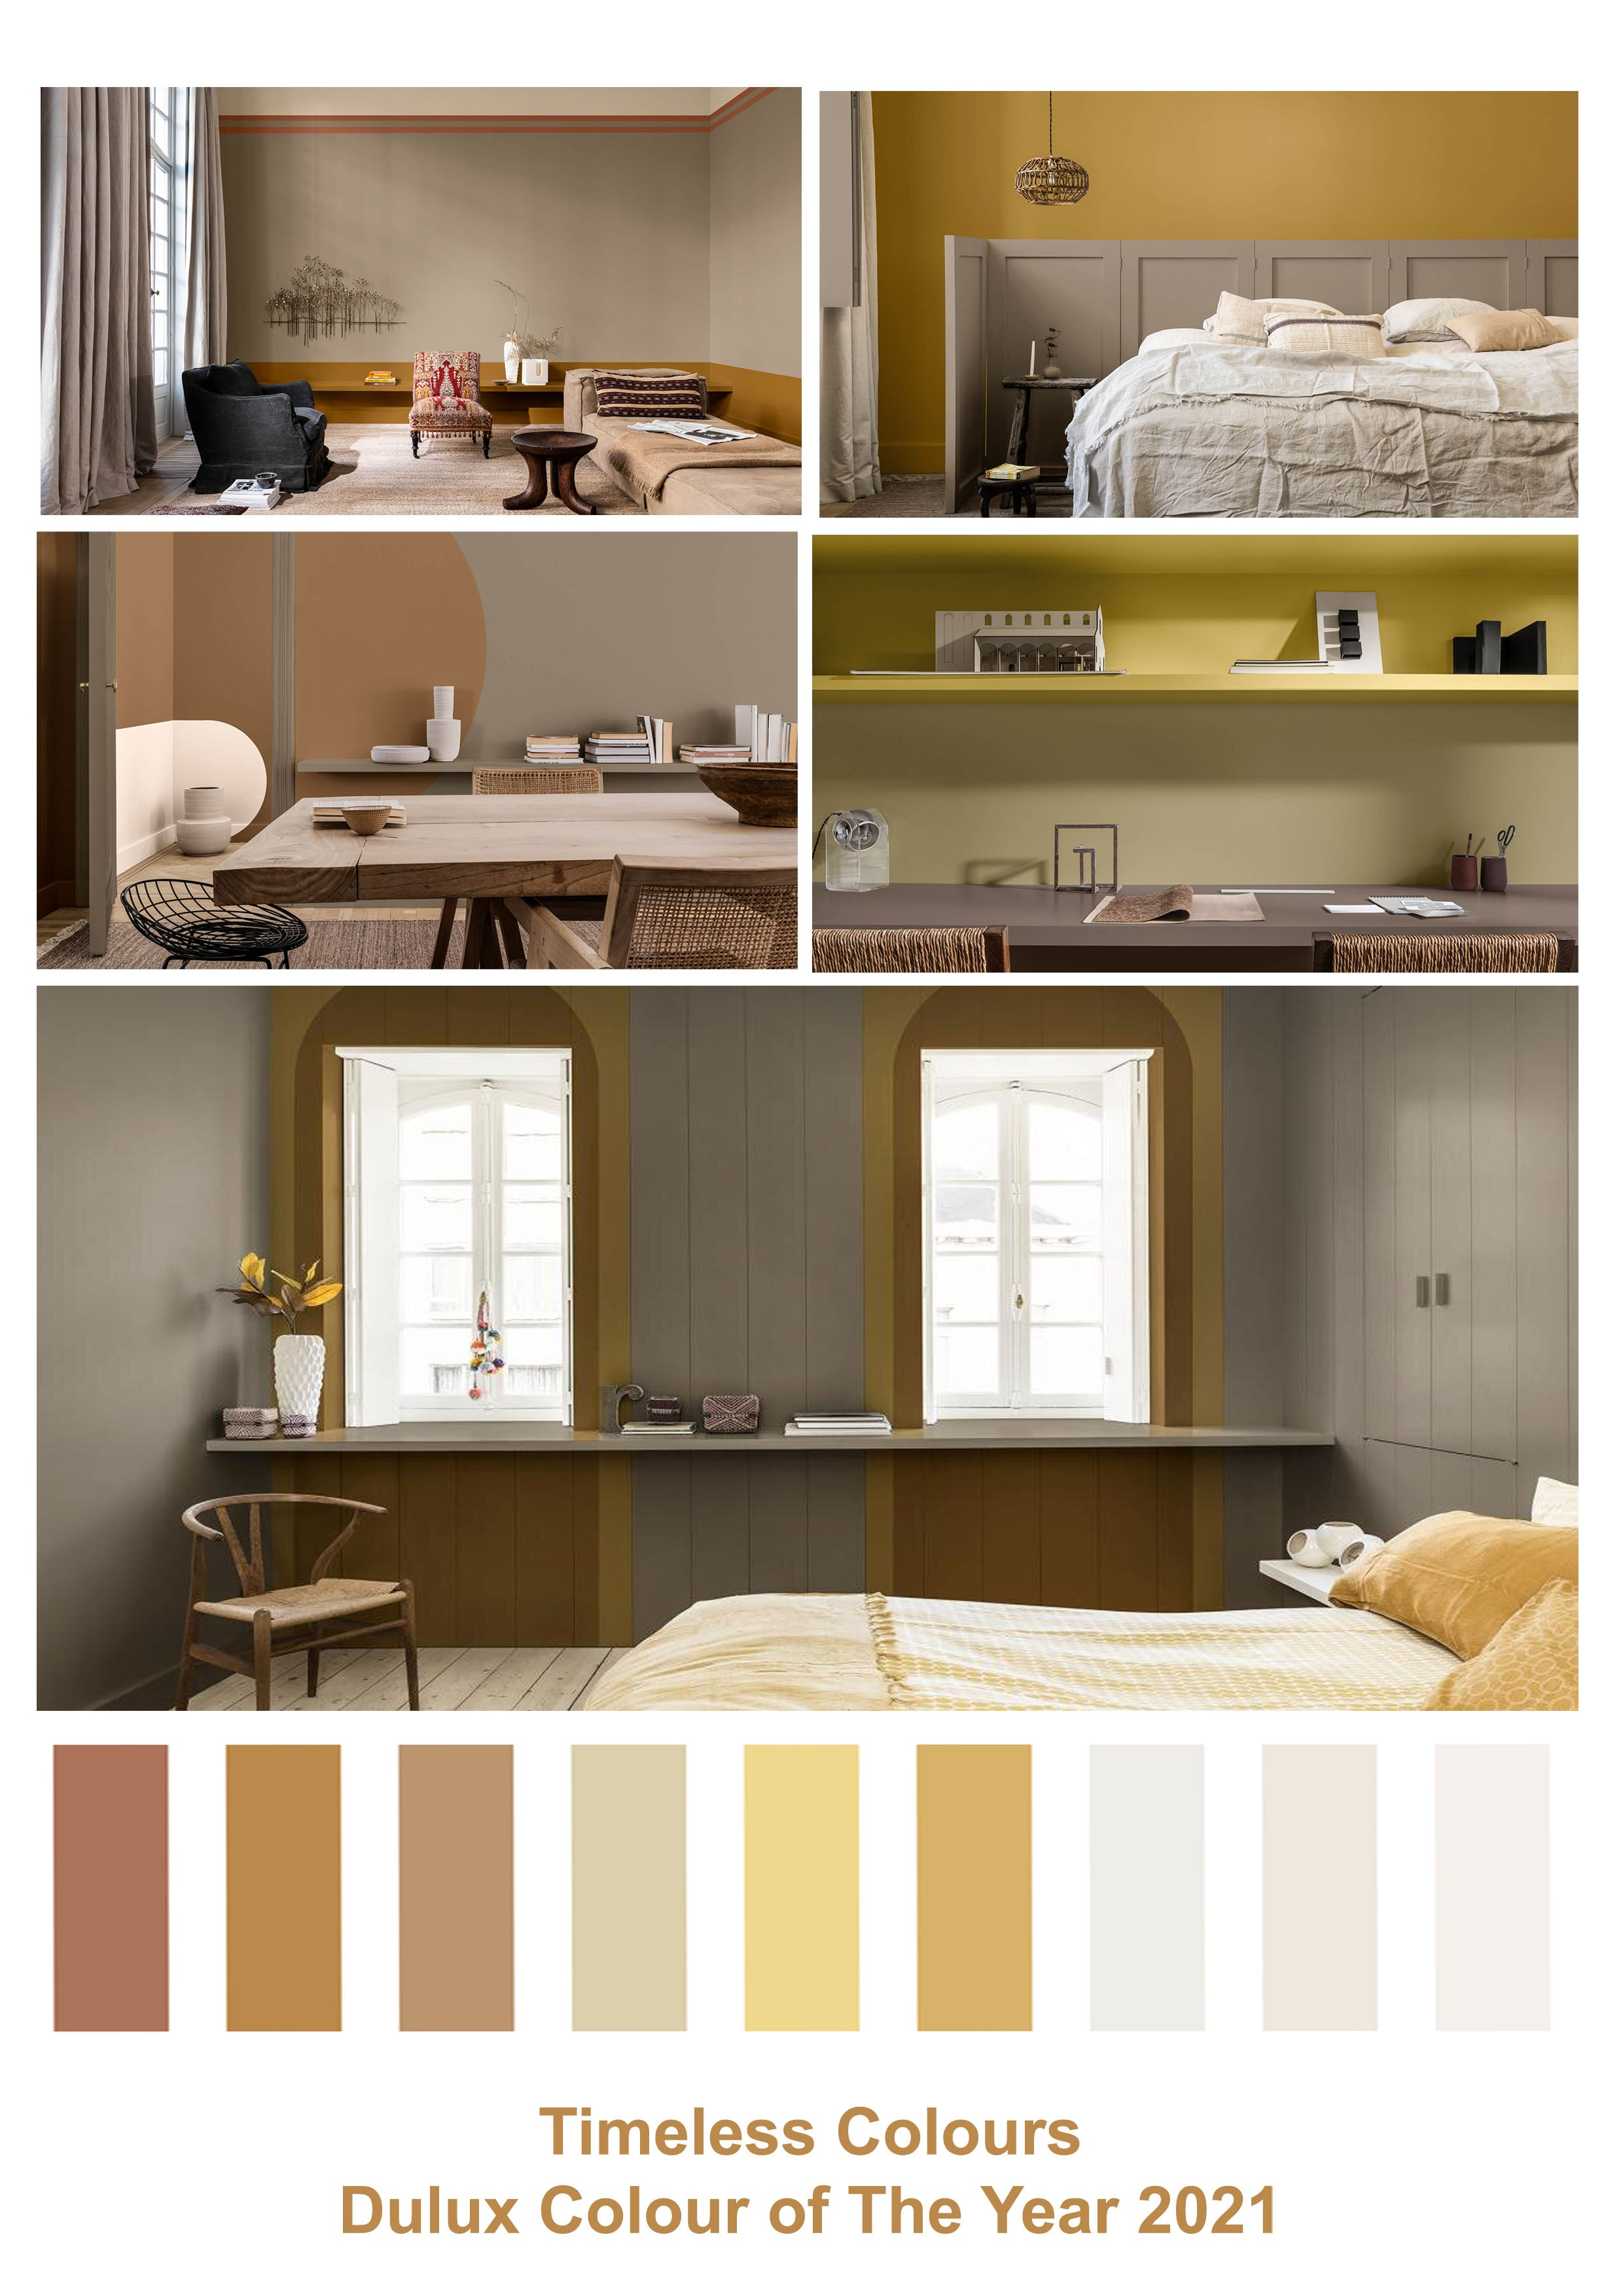 Timeless Colours, Dulux Colour of the Year 2021